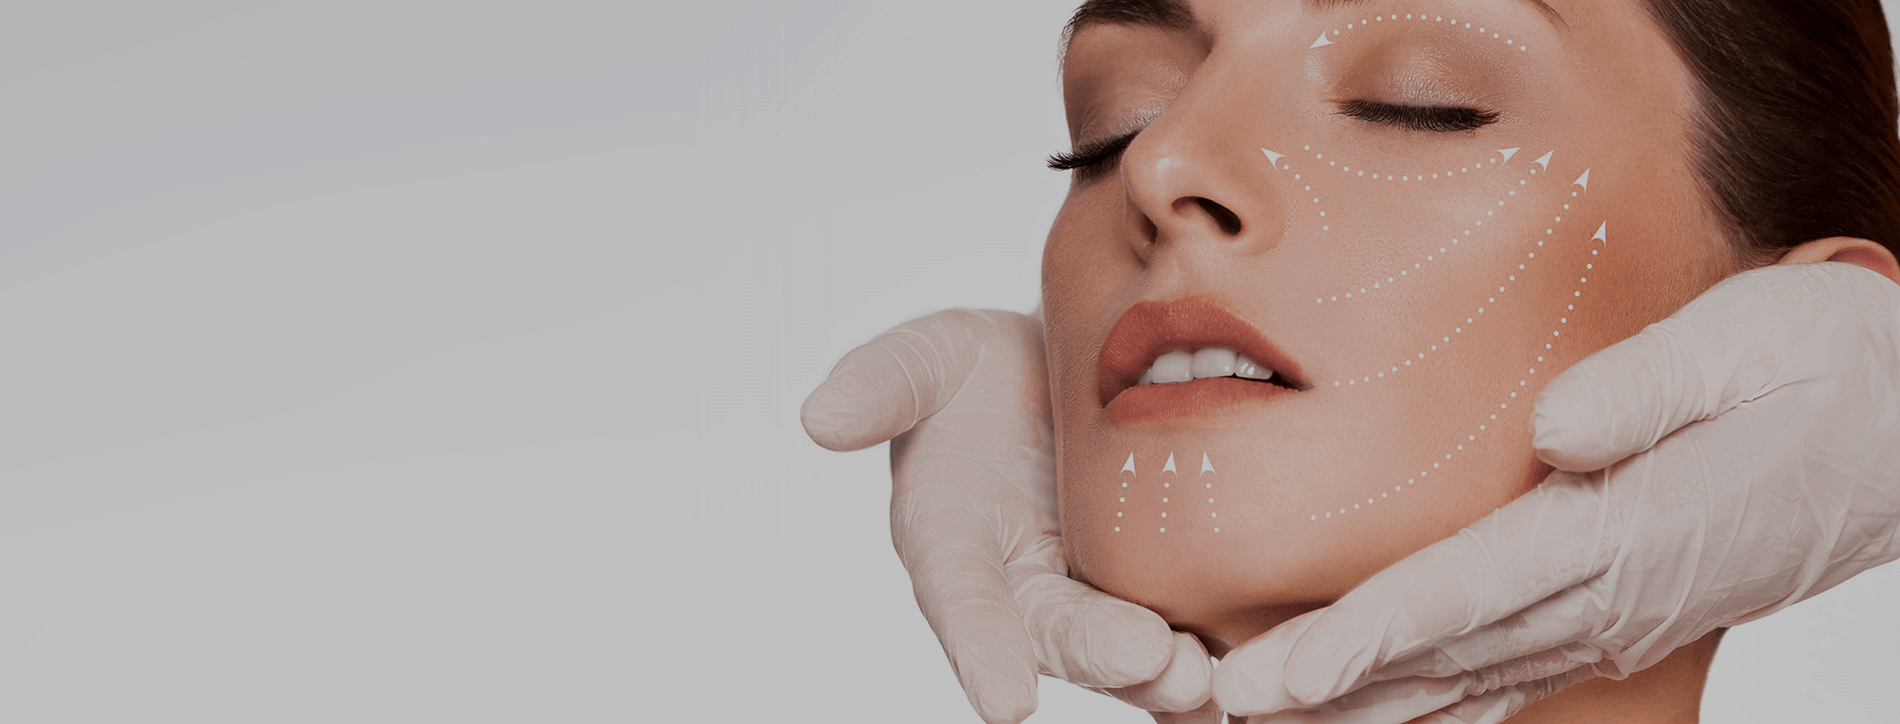 Botox and Juvederm Treatment